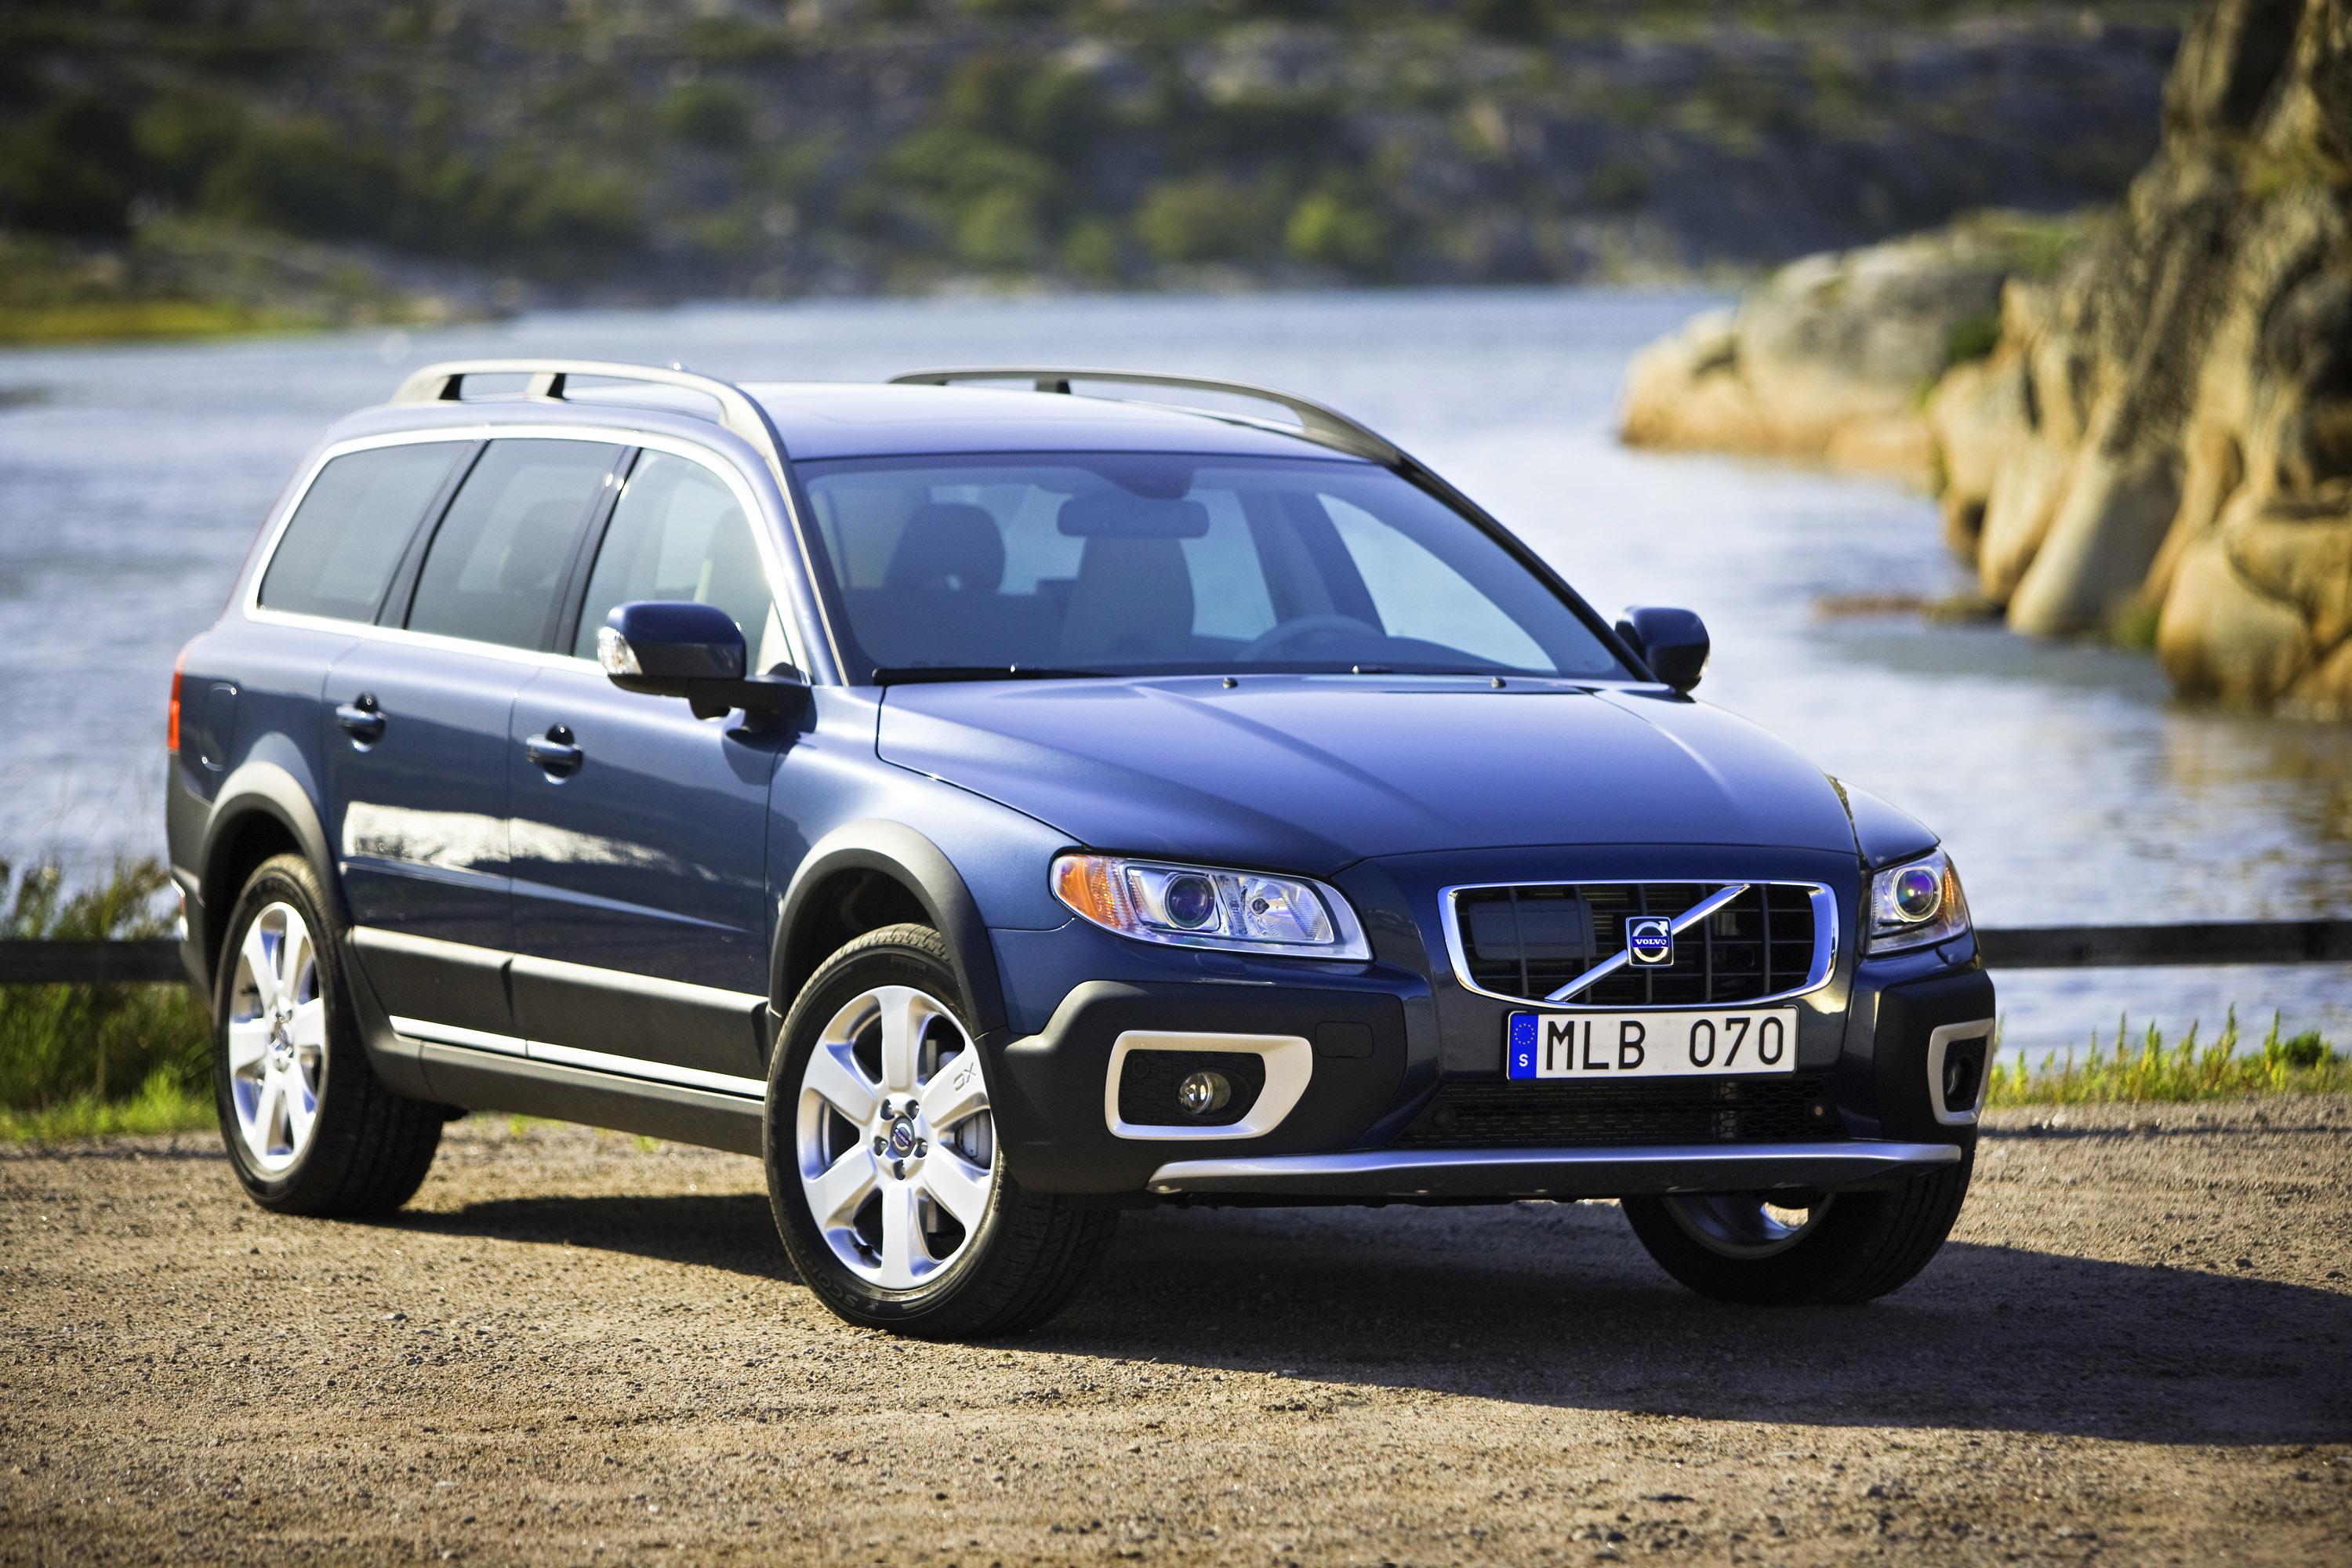 equipment volvo estate how and it features to is much insure accessories safety